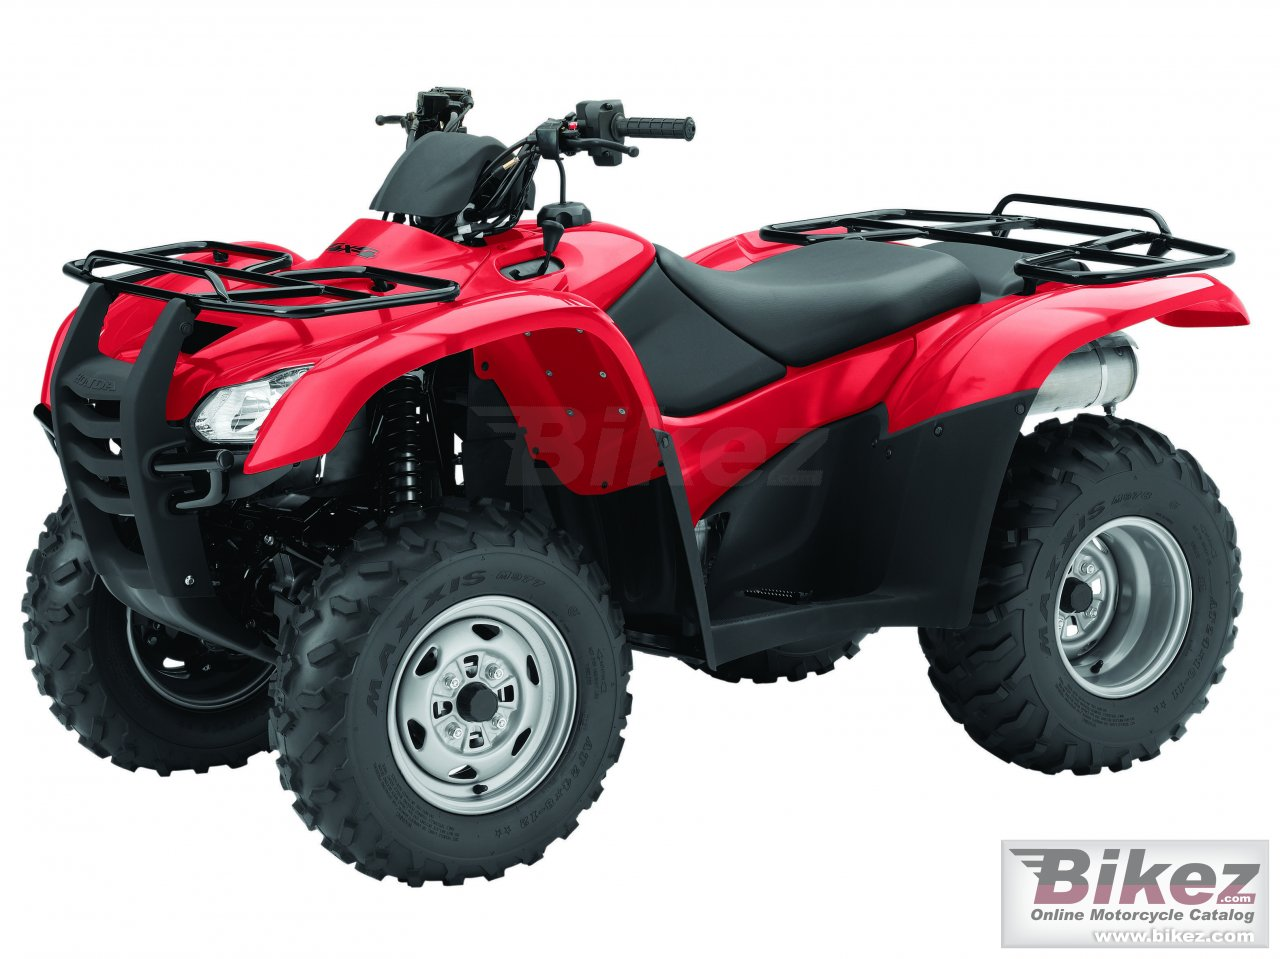 Big Honda trx420fpm picture and wallpaper from Bikez.com